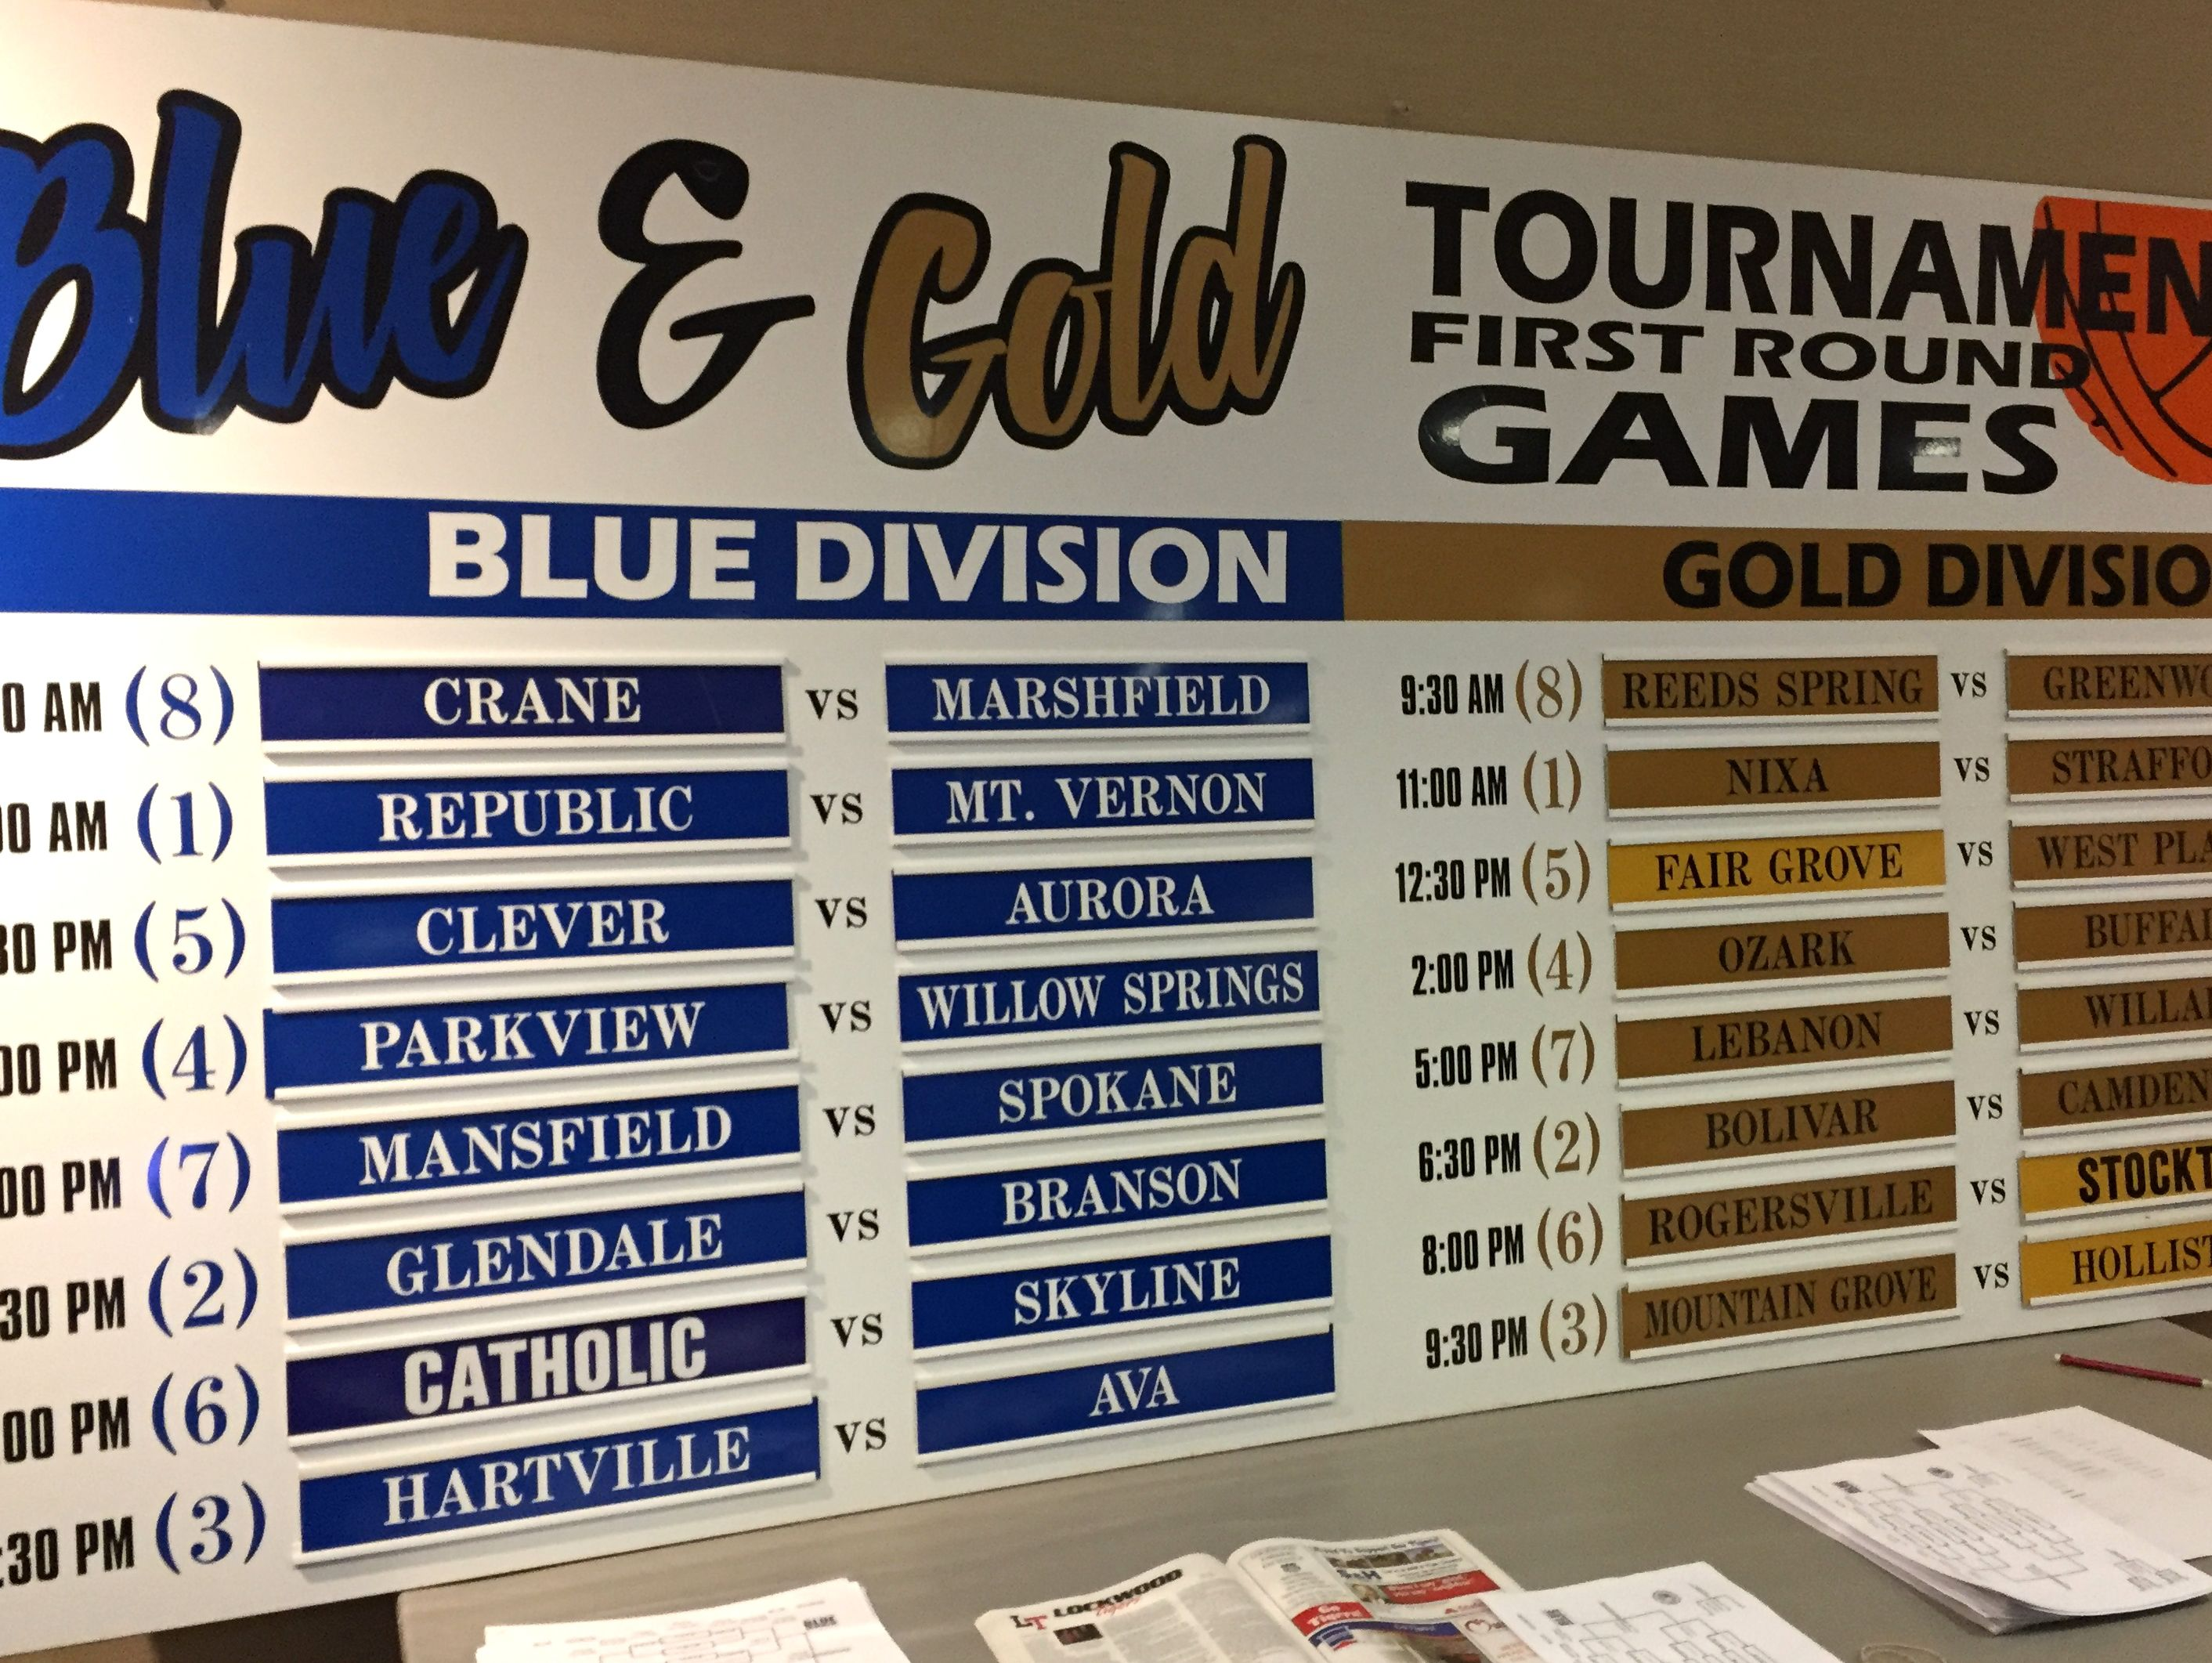 High school basketball coaches learned of the pairings for the 2016 Greenwood Blue and Gold Basketball Tournament on Dec. 14 at JQH Arena.